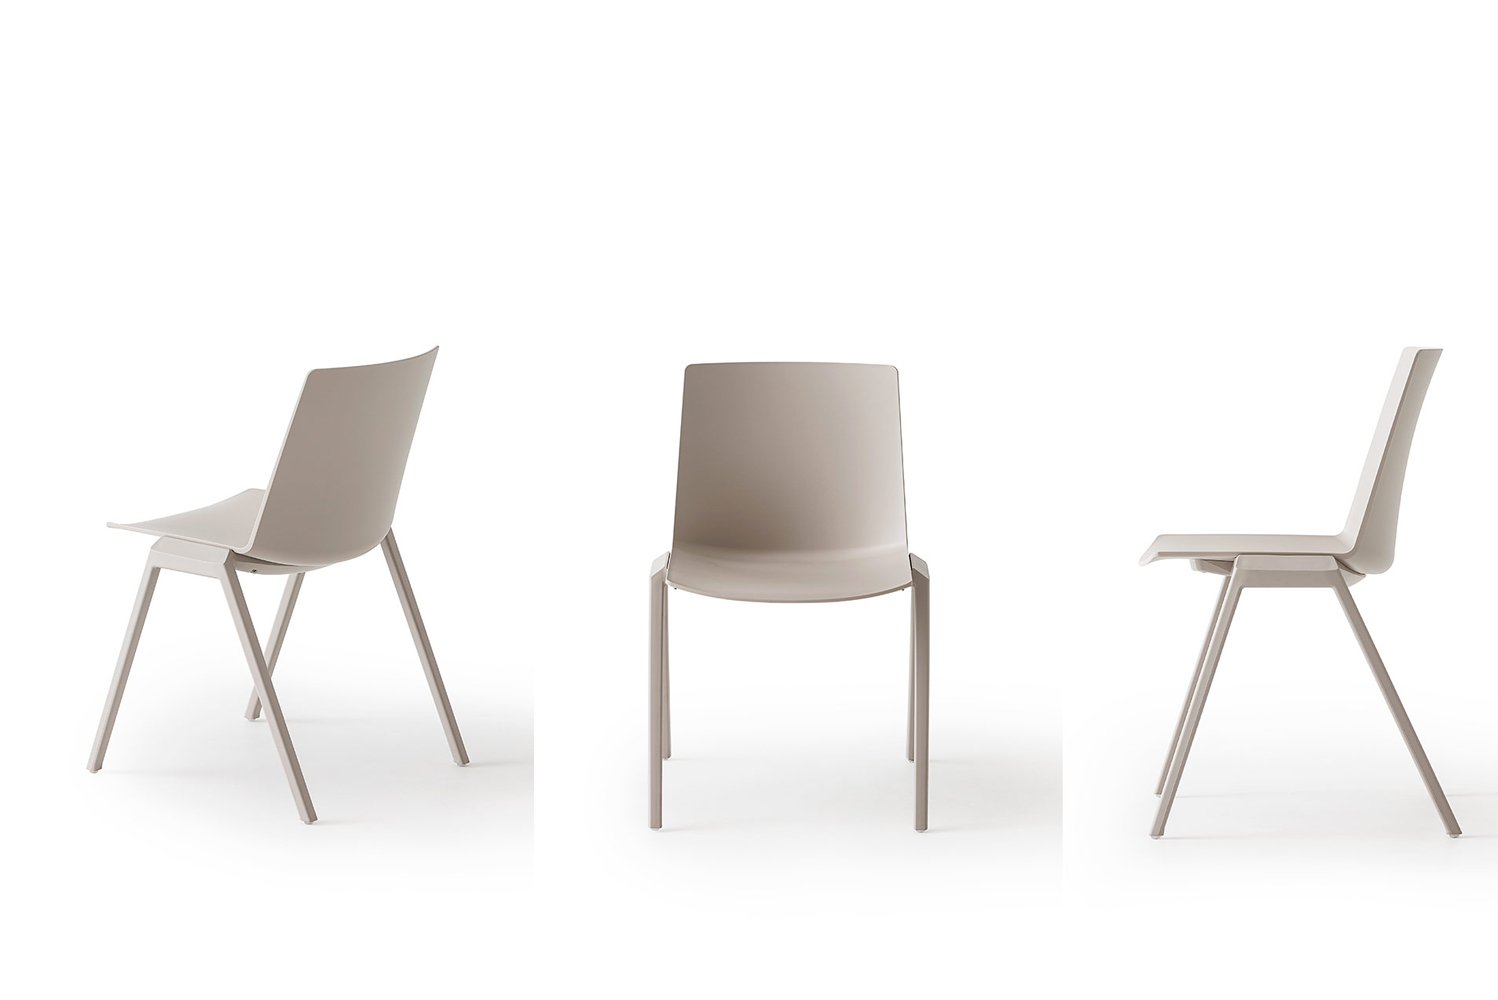 Joule is a Techno polymer chair with a co-injected metal frame.